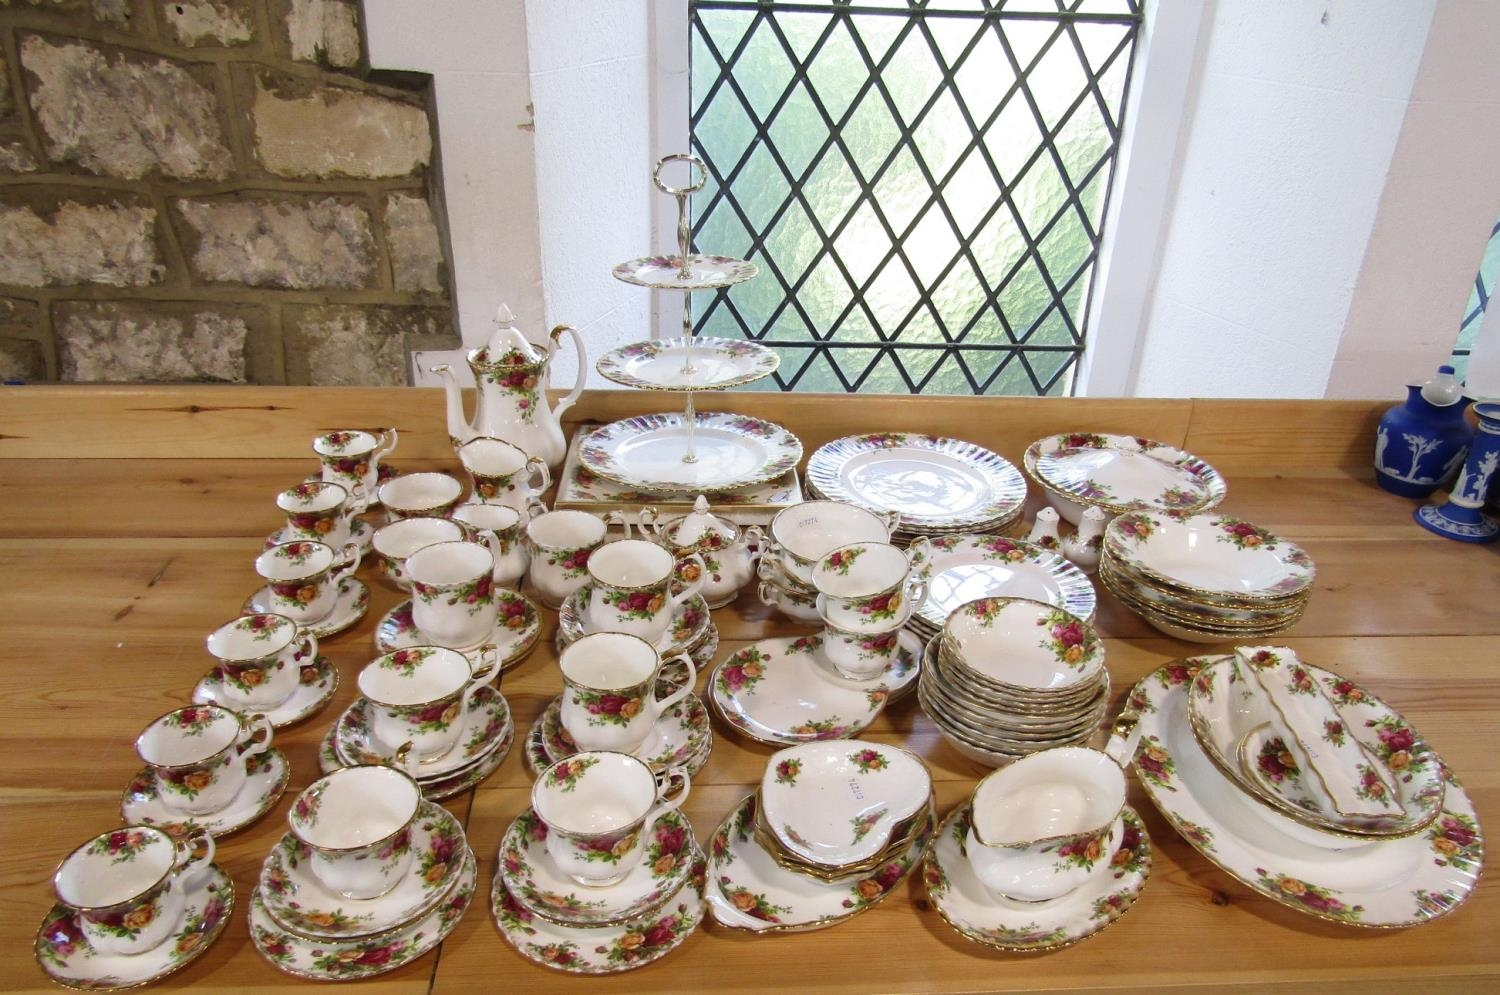 Extensive collection of Royal Albert Old Country Roses pattern wares including a three tier cake - Bild 2 aus 2